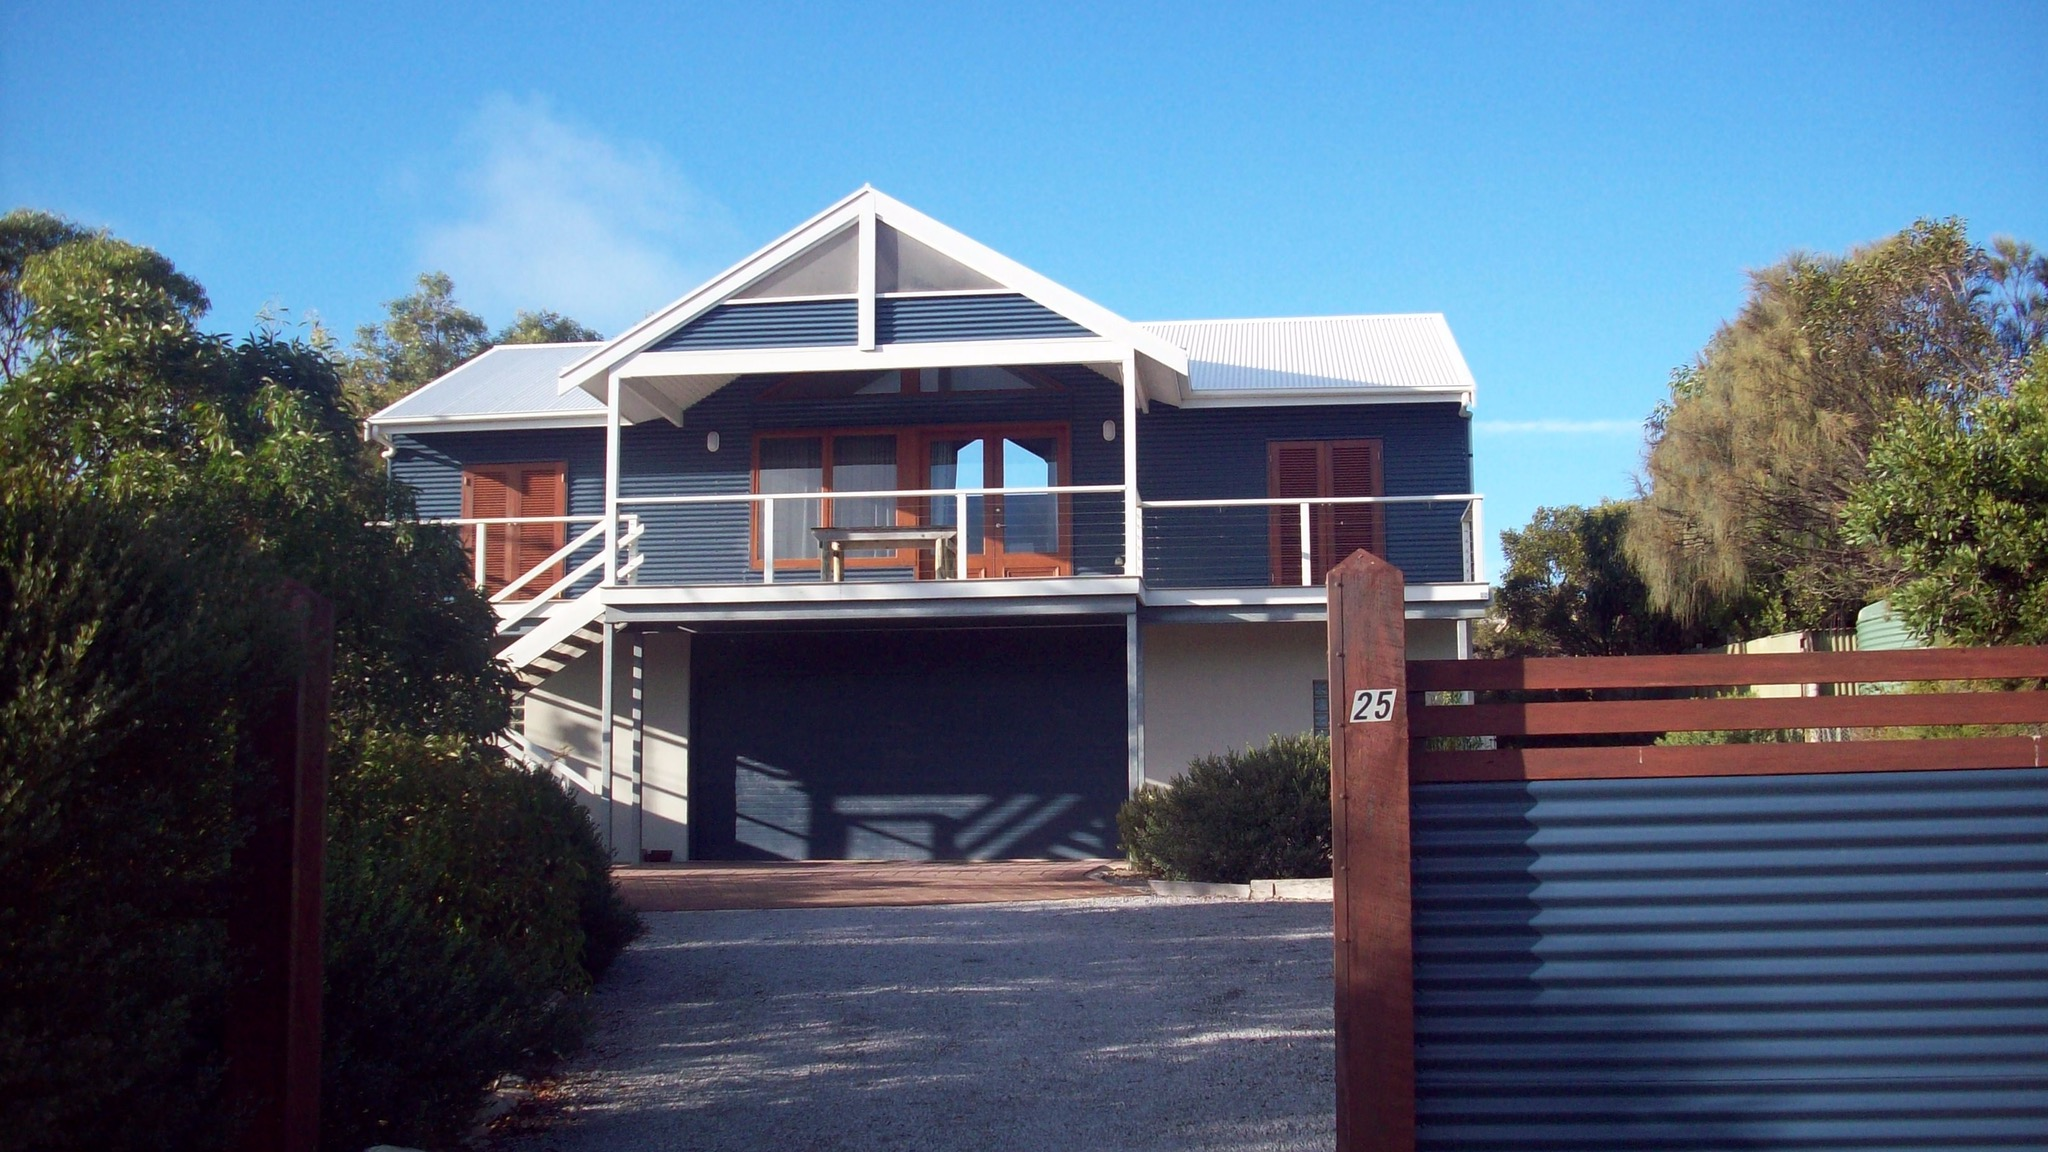 Top Deck Marion Bay - Dalby Accommodation